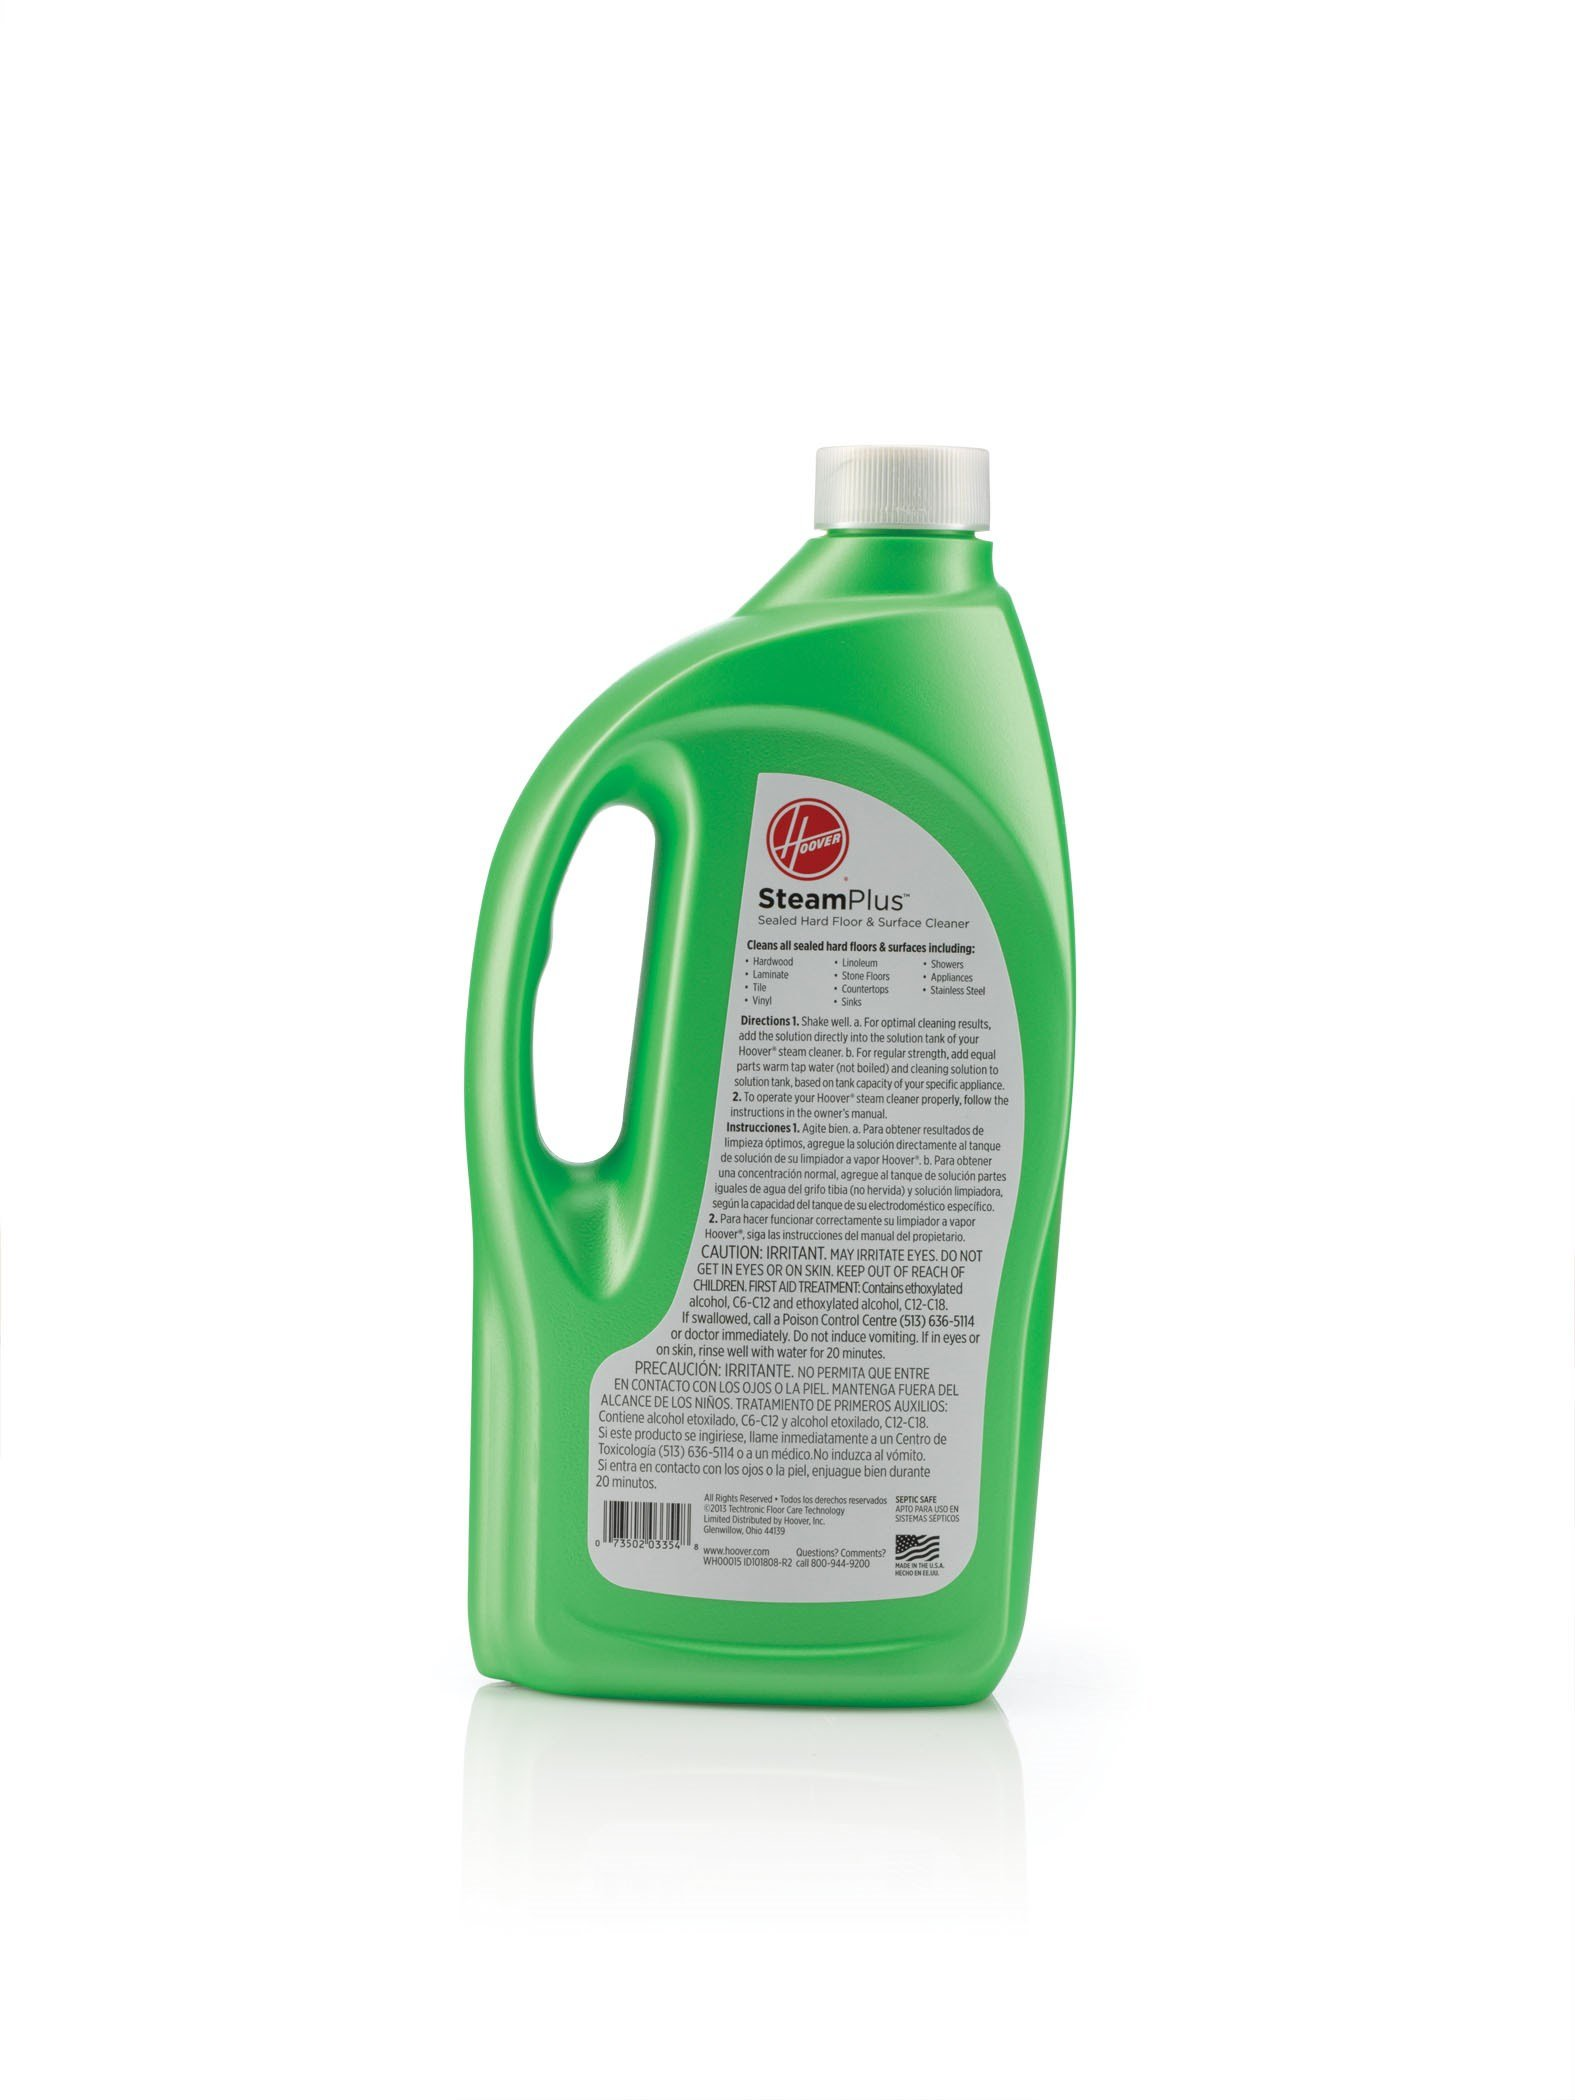 Hoover WH00015 Hard Floor Cleaning Solution, SteamPlus Multi-Floor 2X Concentrated Formula, 32 oz by Hoover (Image #2)